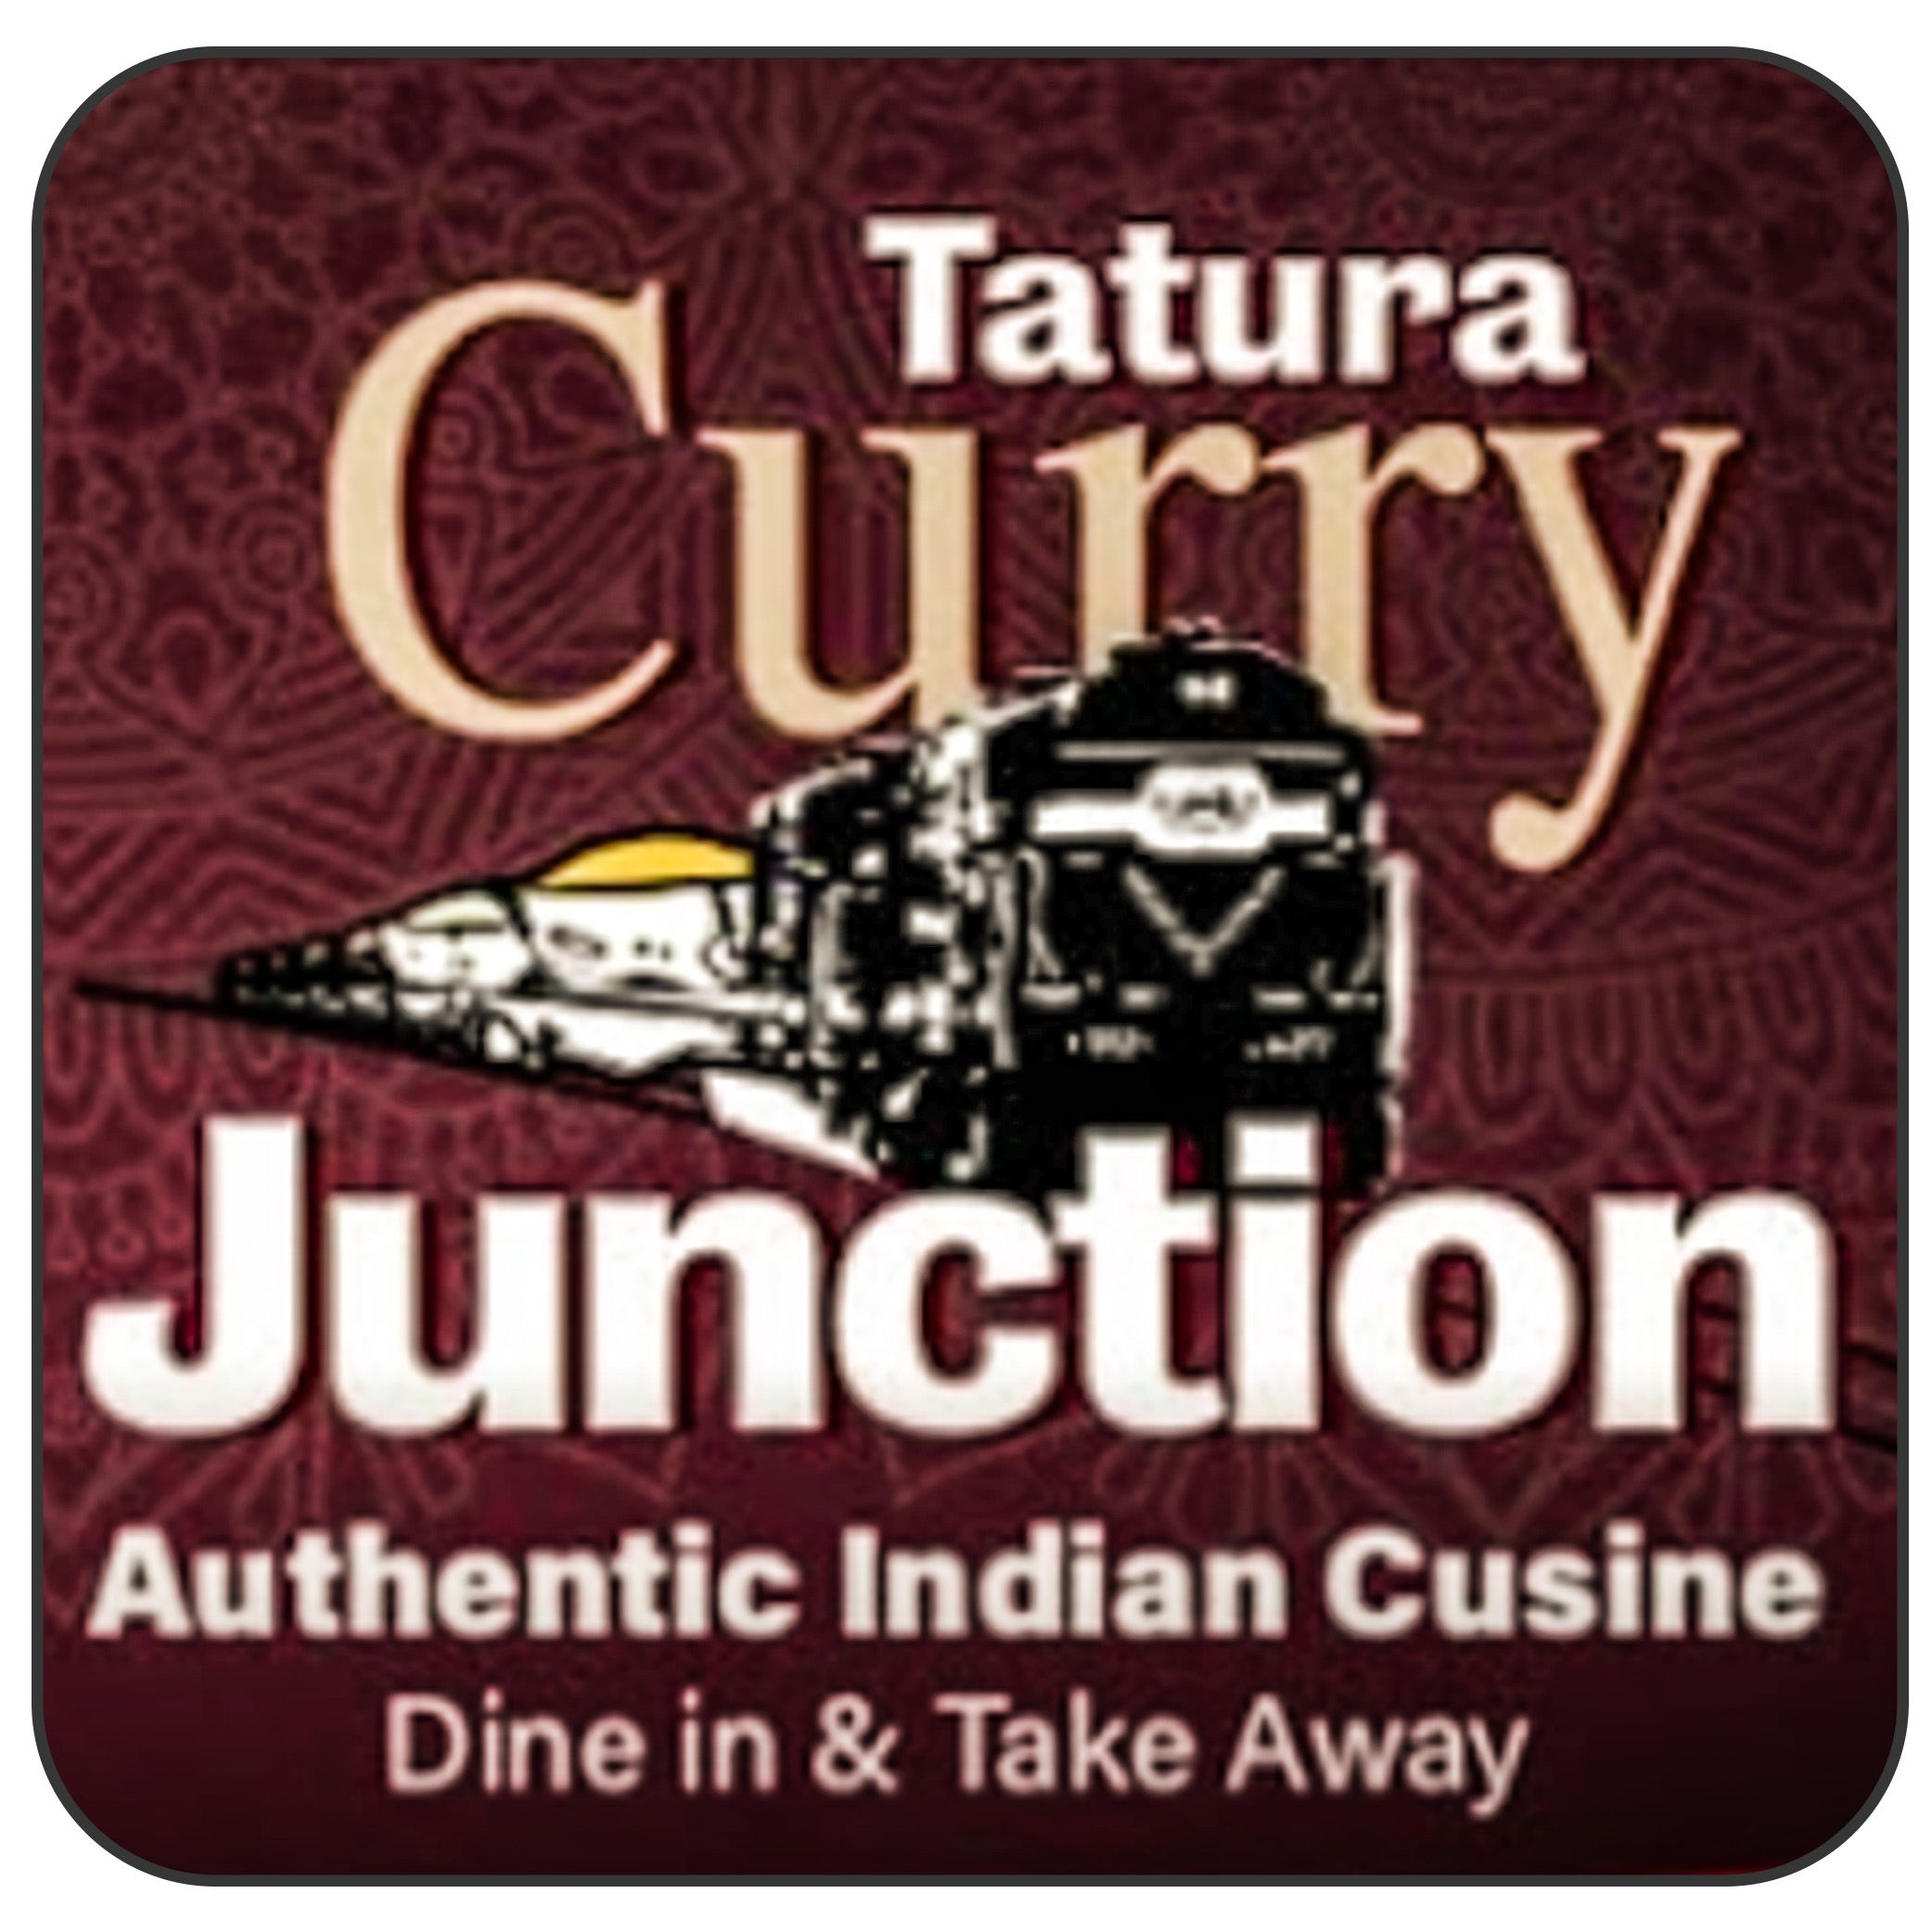 Tatura curry junction